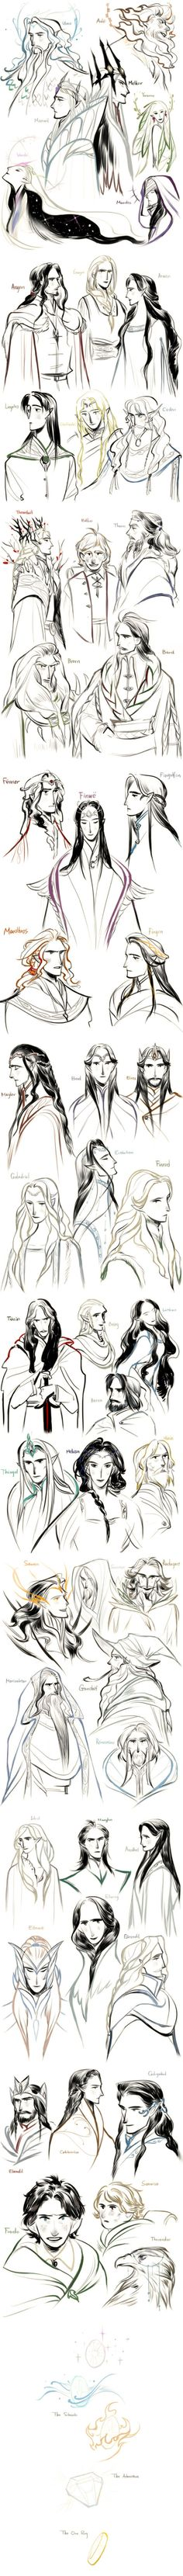 [Tolkien]54 characters by Wavesheep.deviantart.com on @deviantART I dont have words for how much i love this!